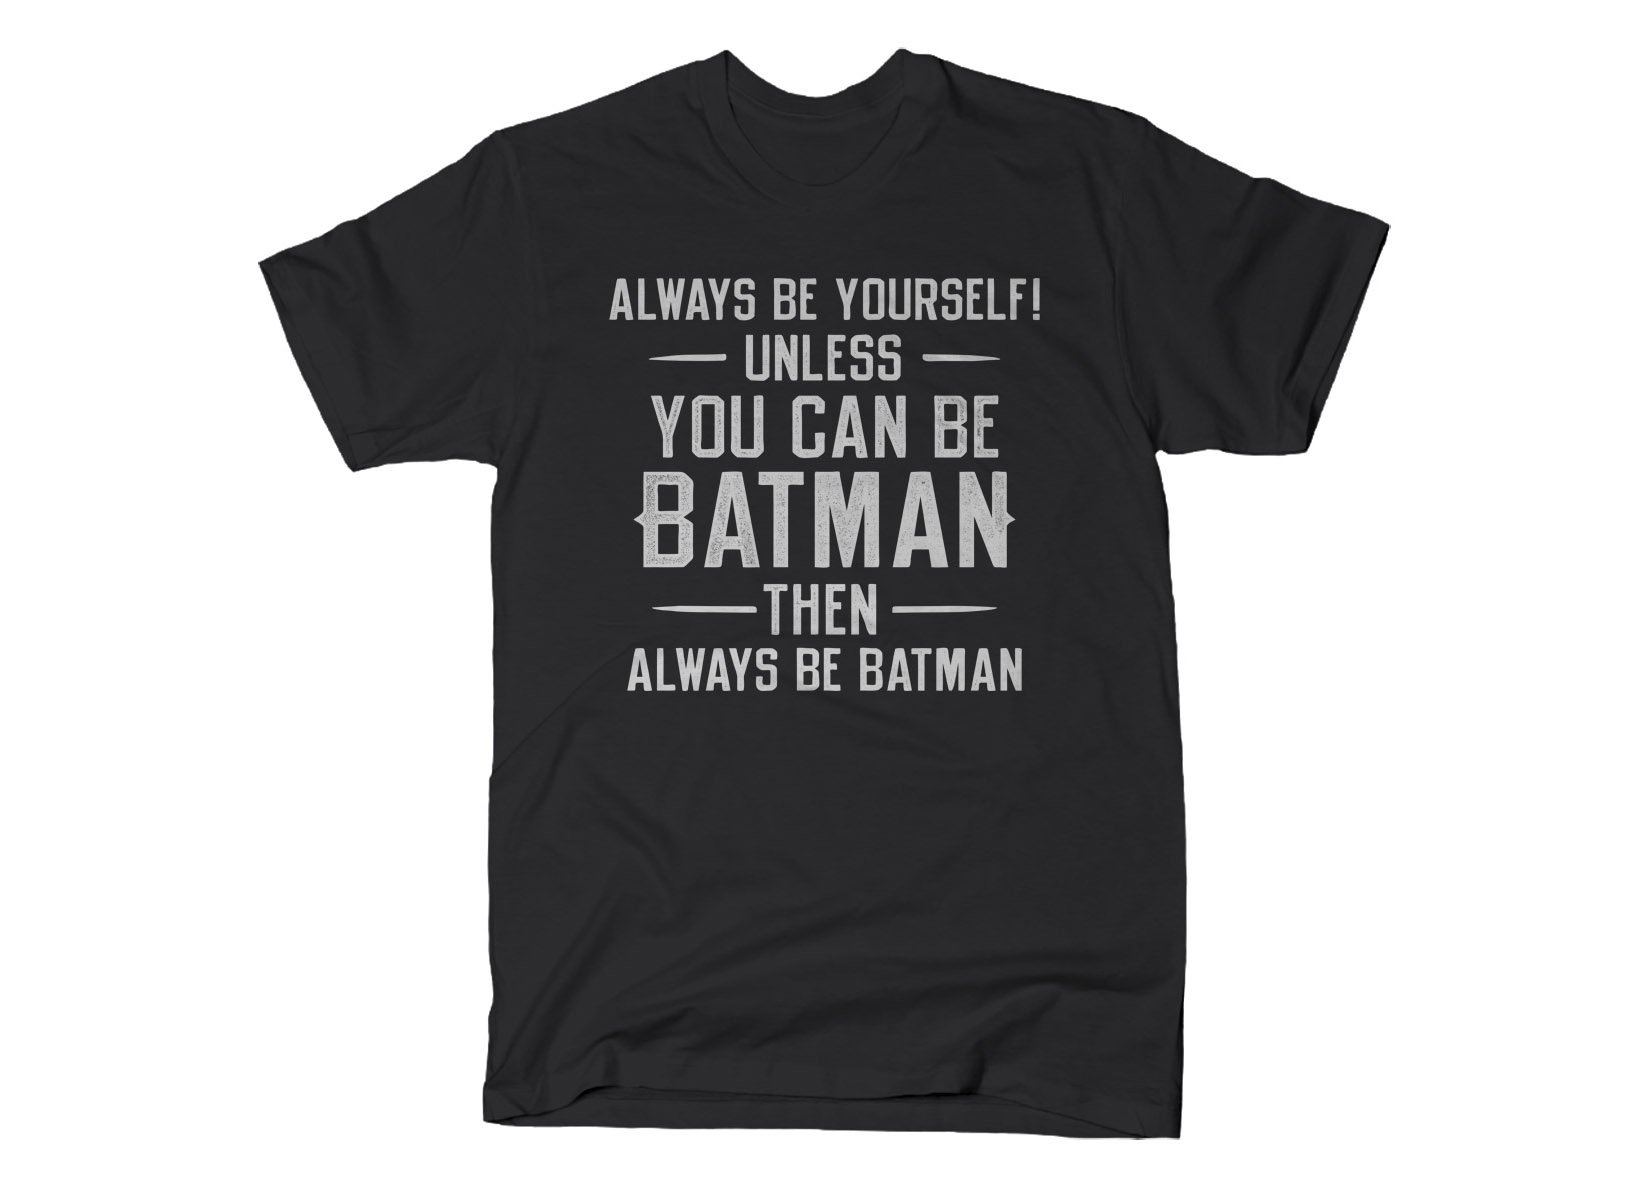 Always Be Yourself on Mens T-Shirt